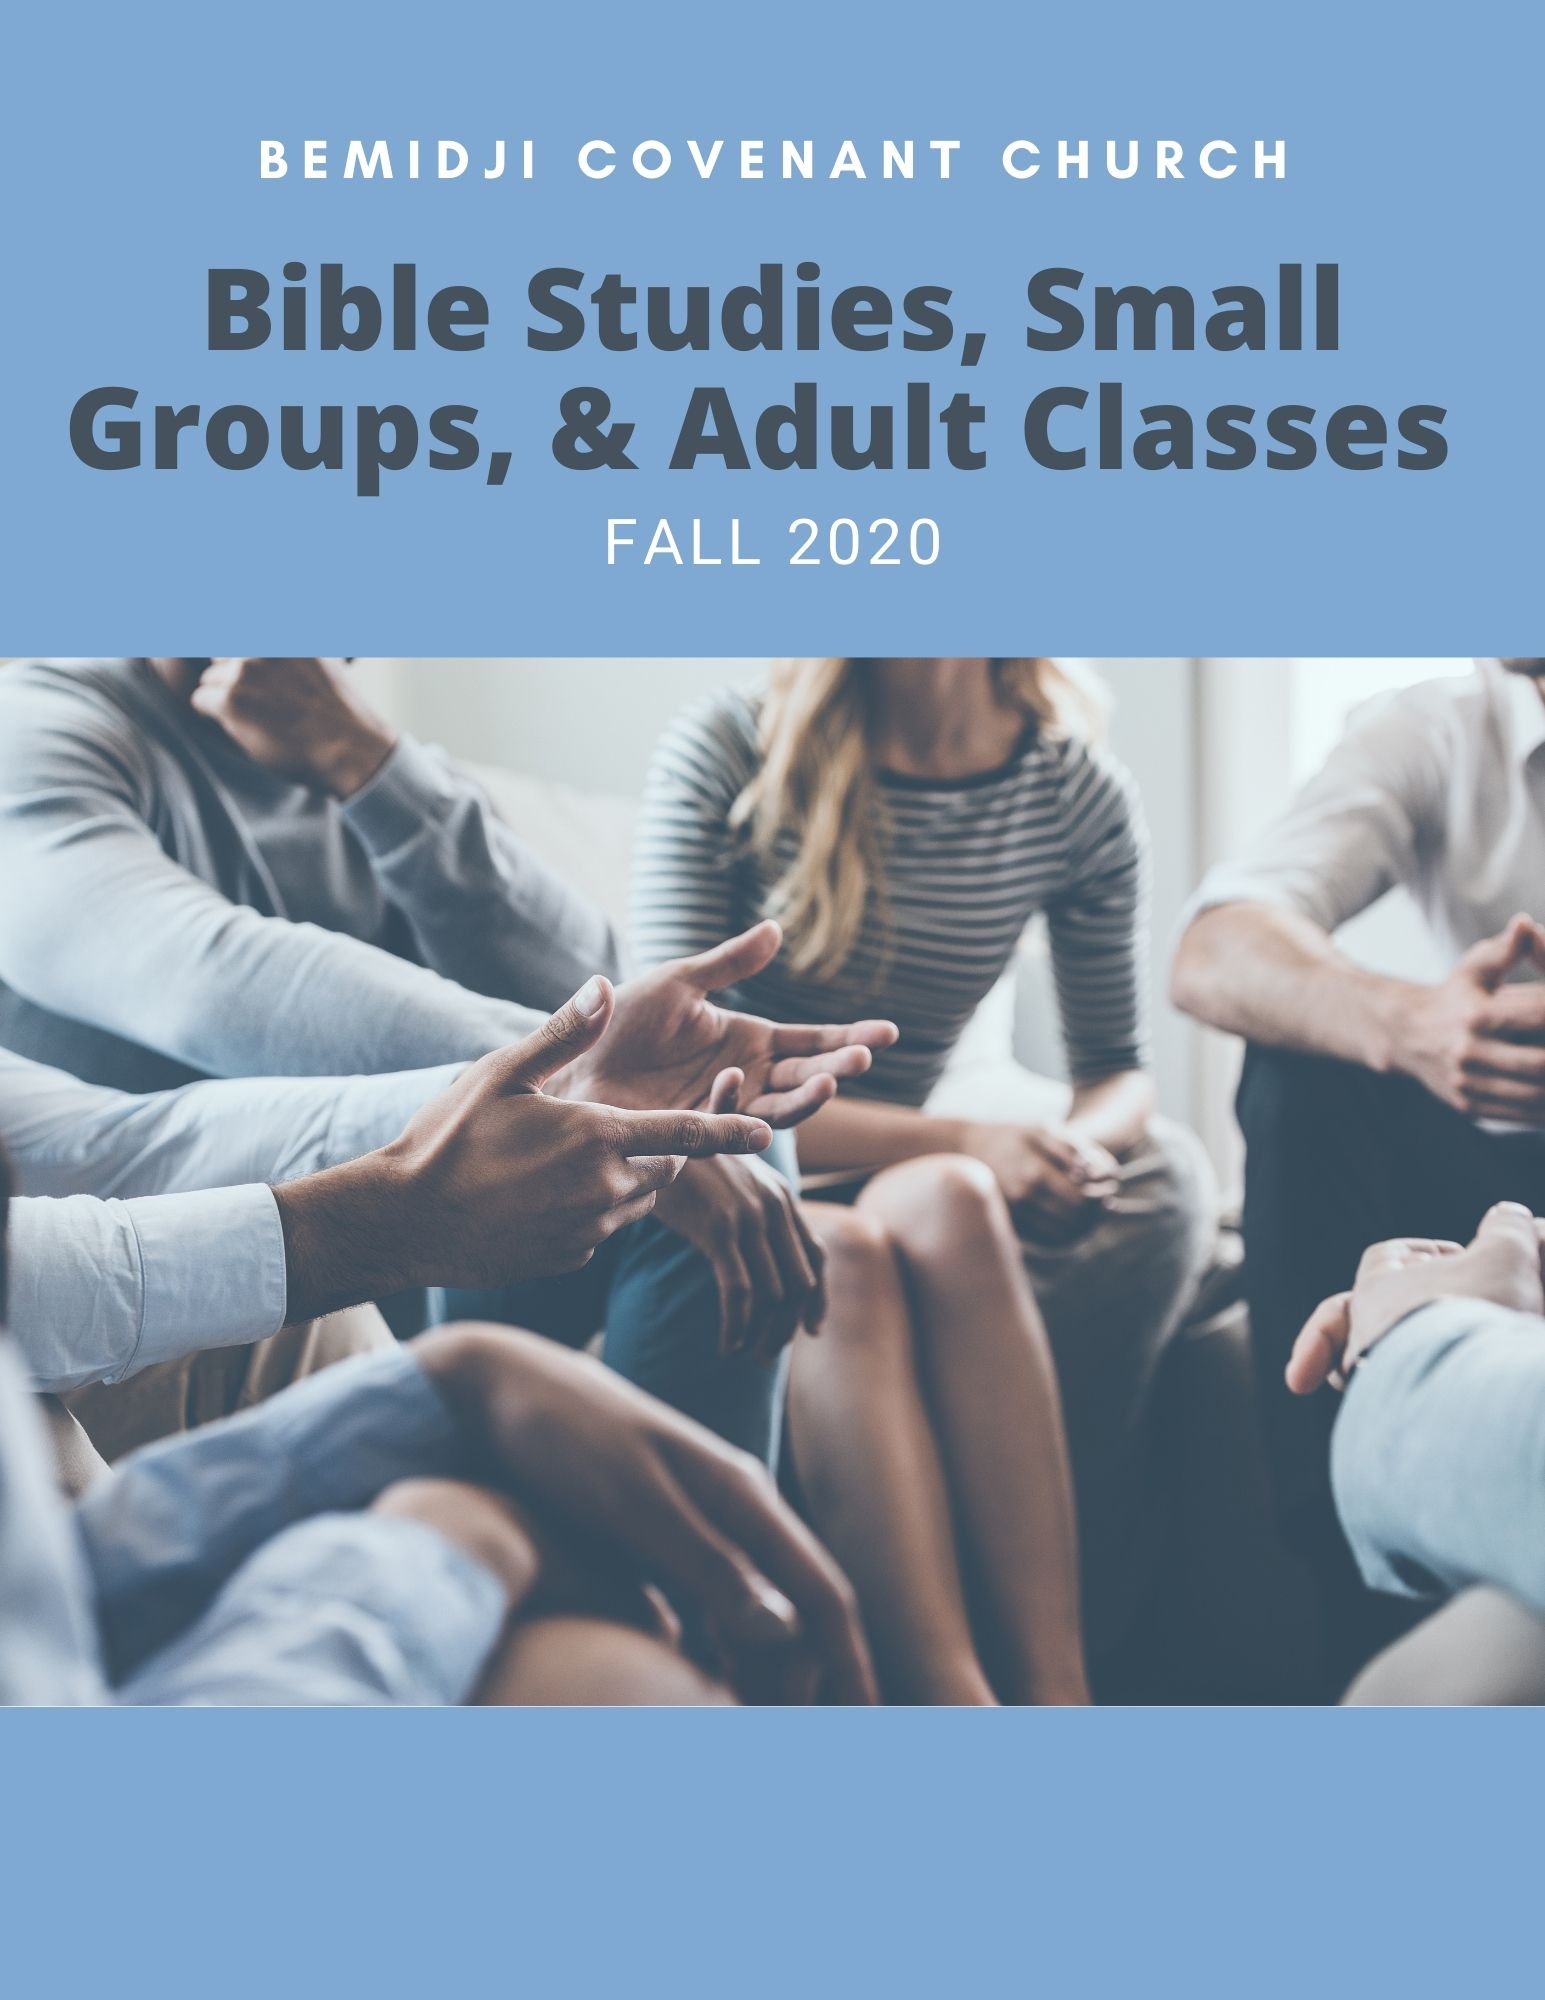 Bible Studies, Small groups, Adult Classes